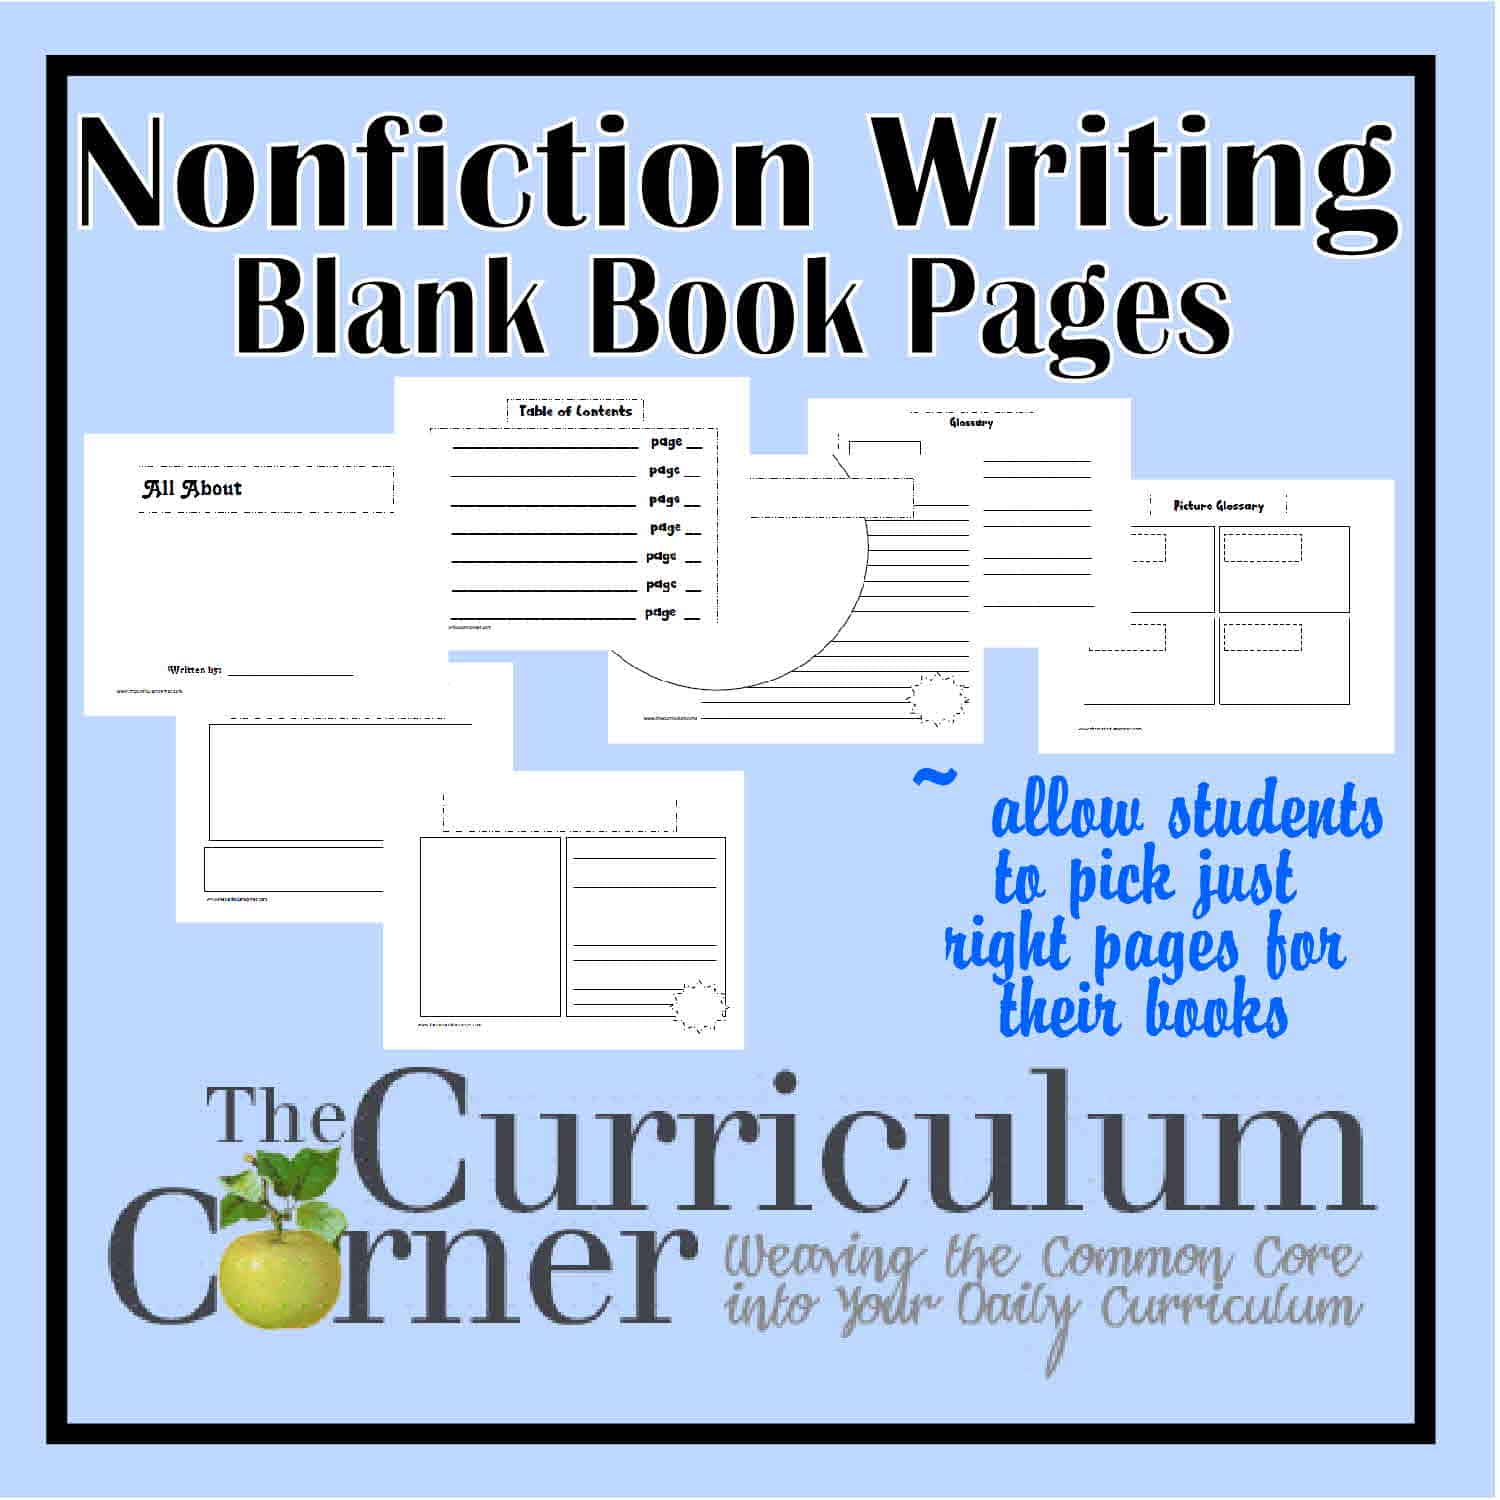 Nonfiction Writing Blank Book Pages